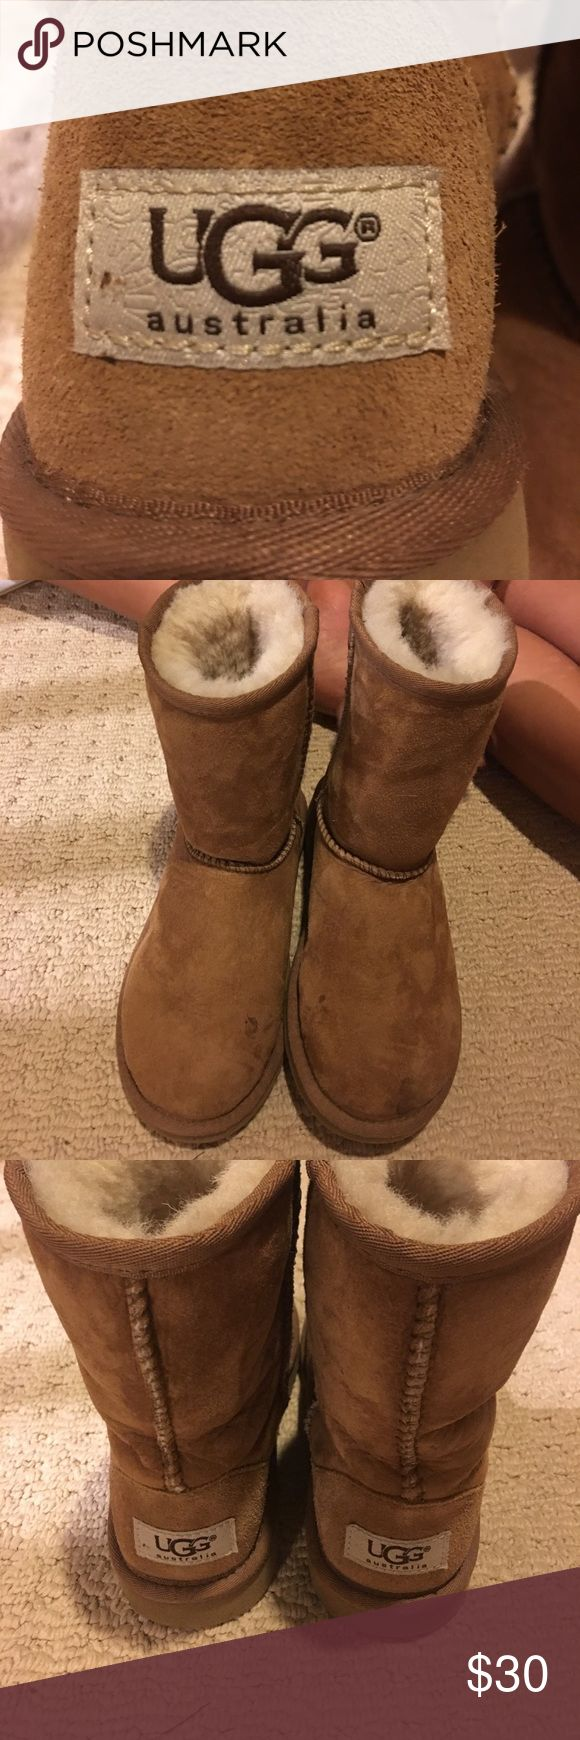 UGG Kids Boots good condition Great condition.  Purchased from Neiman Marcus in New York UGG Shoes Boots